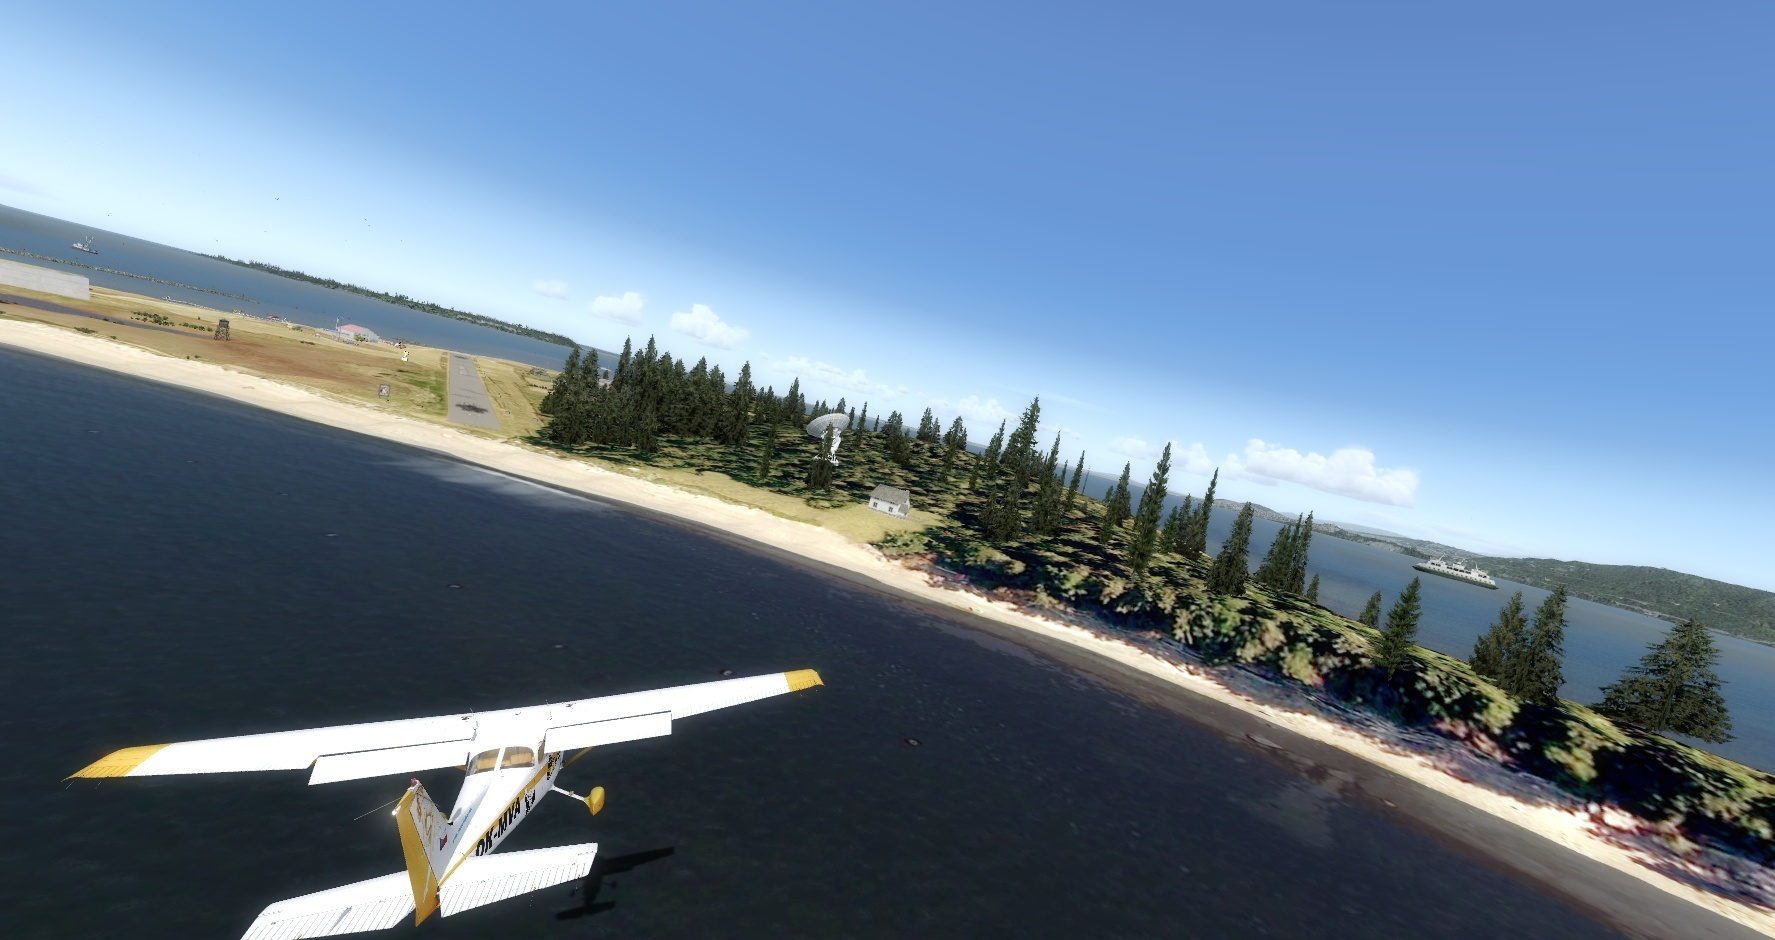 Mouseviator Private Island - approaching runway 34.